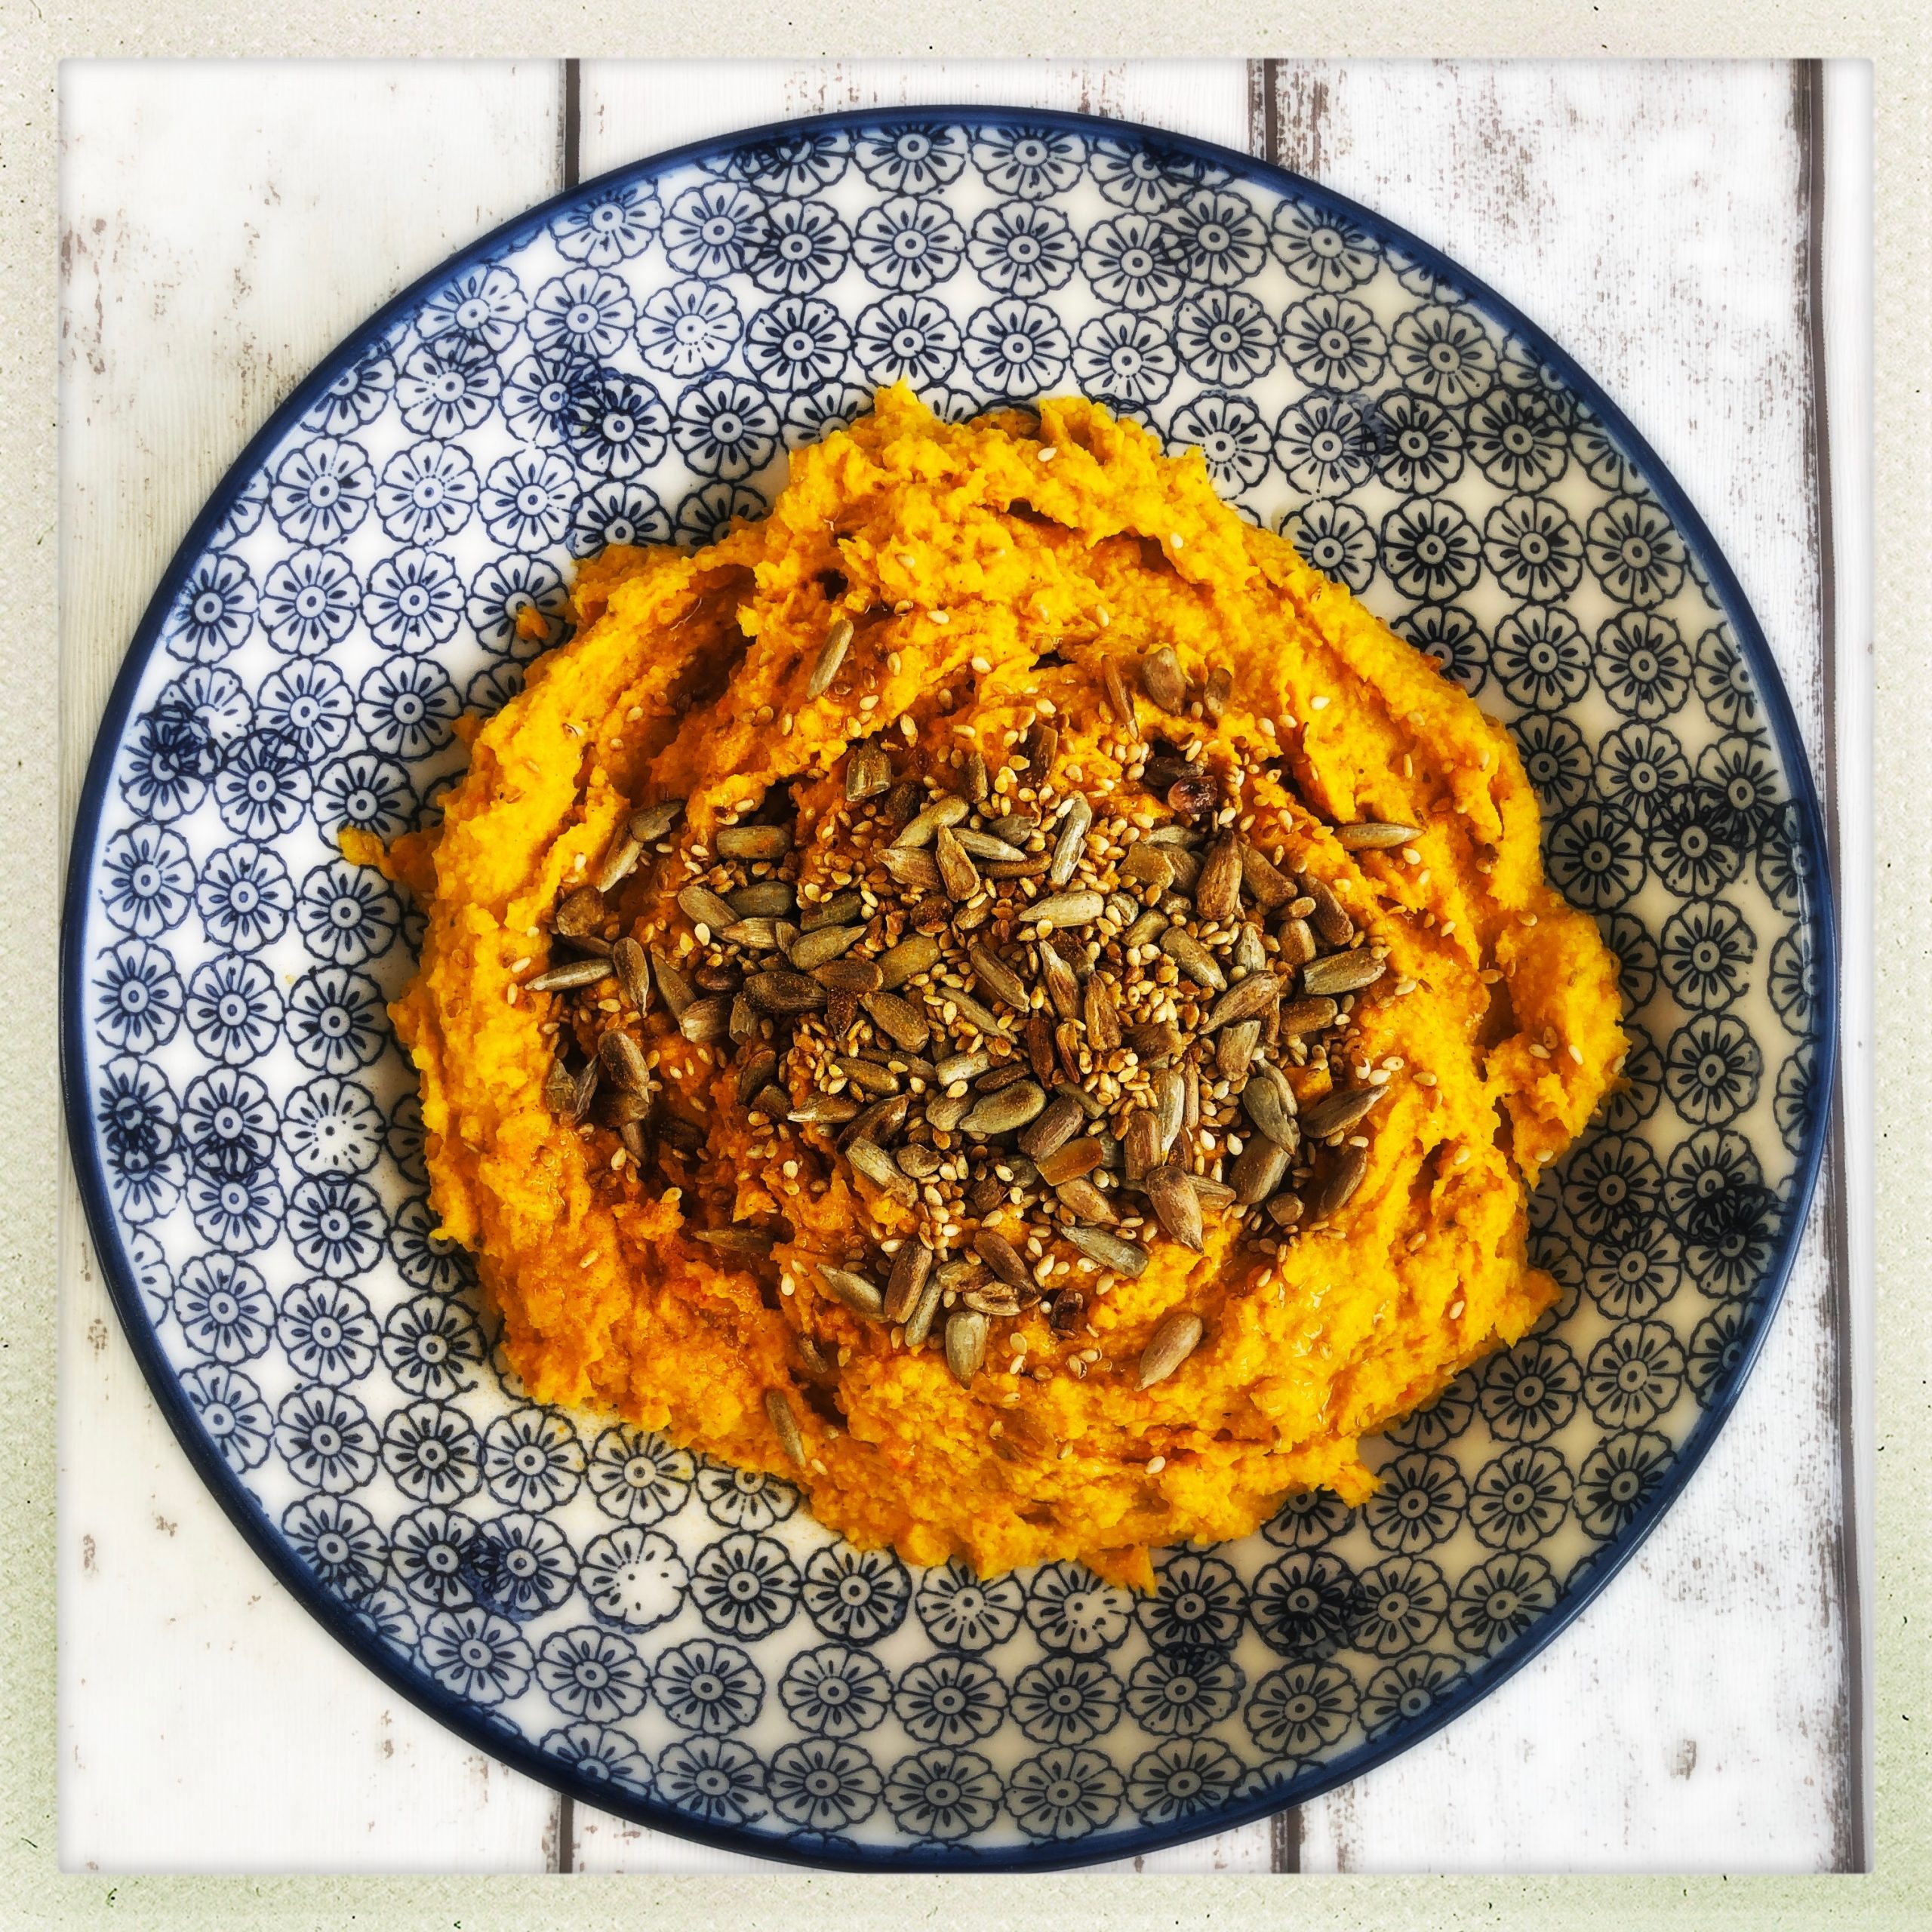 blue and white bowl filled with homemade carrot hummus topped with toasted seeds.